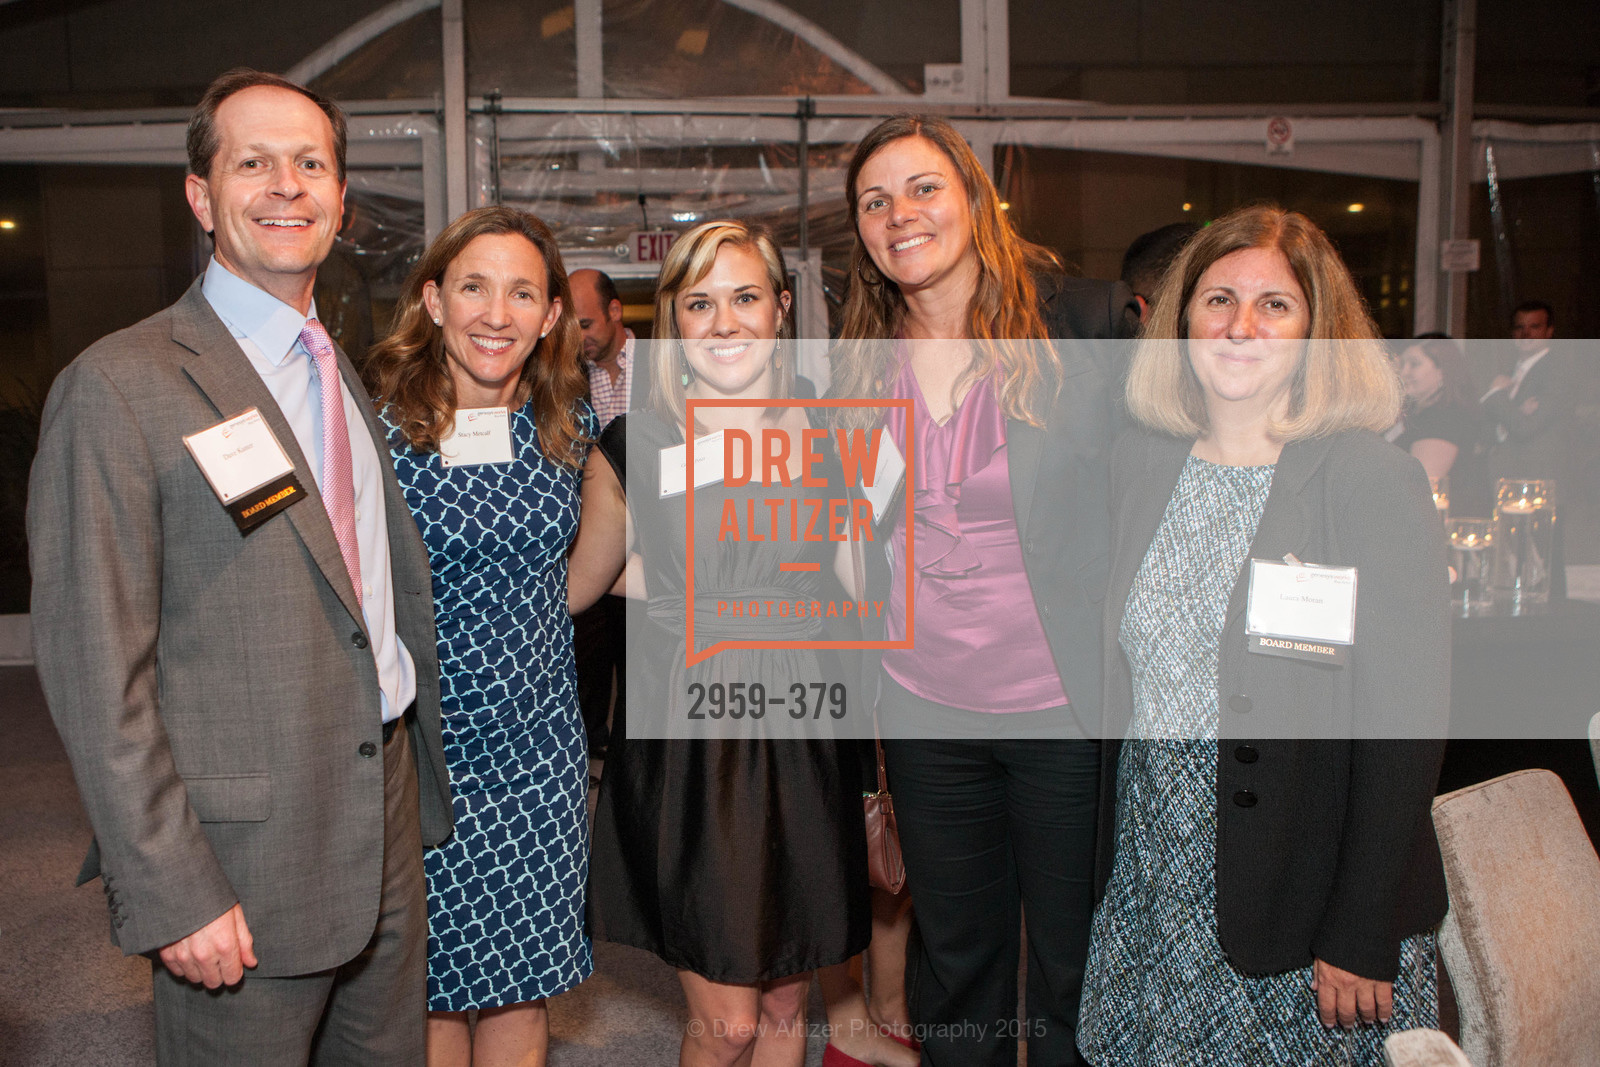 Dave Kanter, Katie Metcalf, Grace Peter, Casey Johnson, Laura Moran, Genesys Works Bay Area Presents BREAKING THROUGH, St. Regis Hotel. 125 3rd St, October 14th, 2015,Drew Altizer, Drew Altizer Photography, full-service agency, private events, San Francisco photographer, photographer california